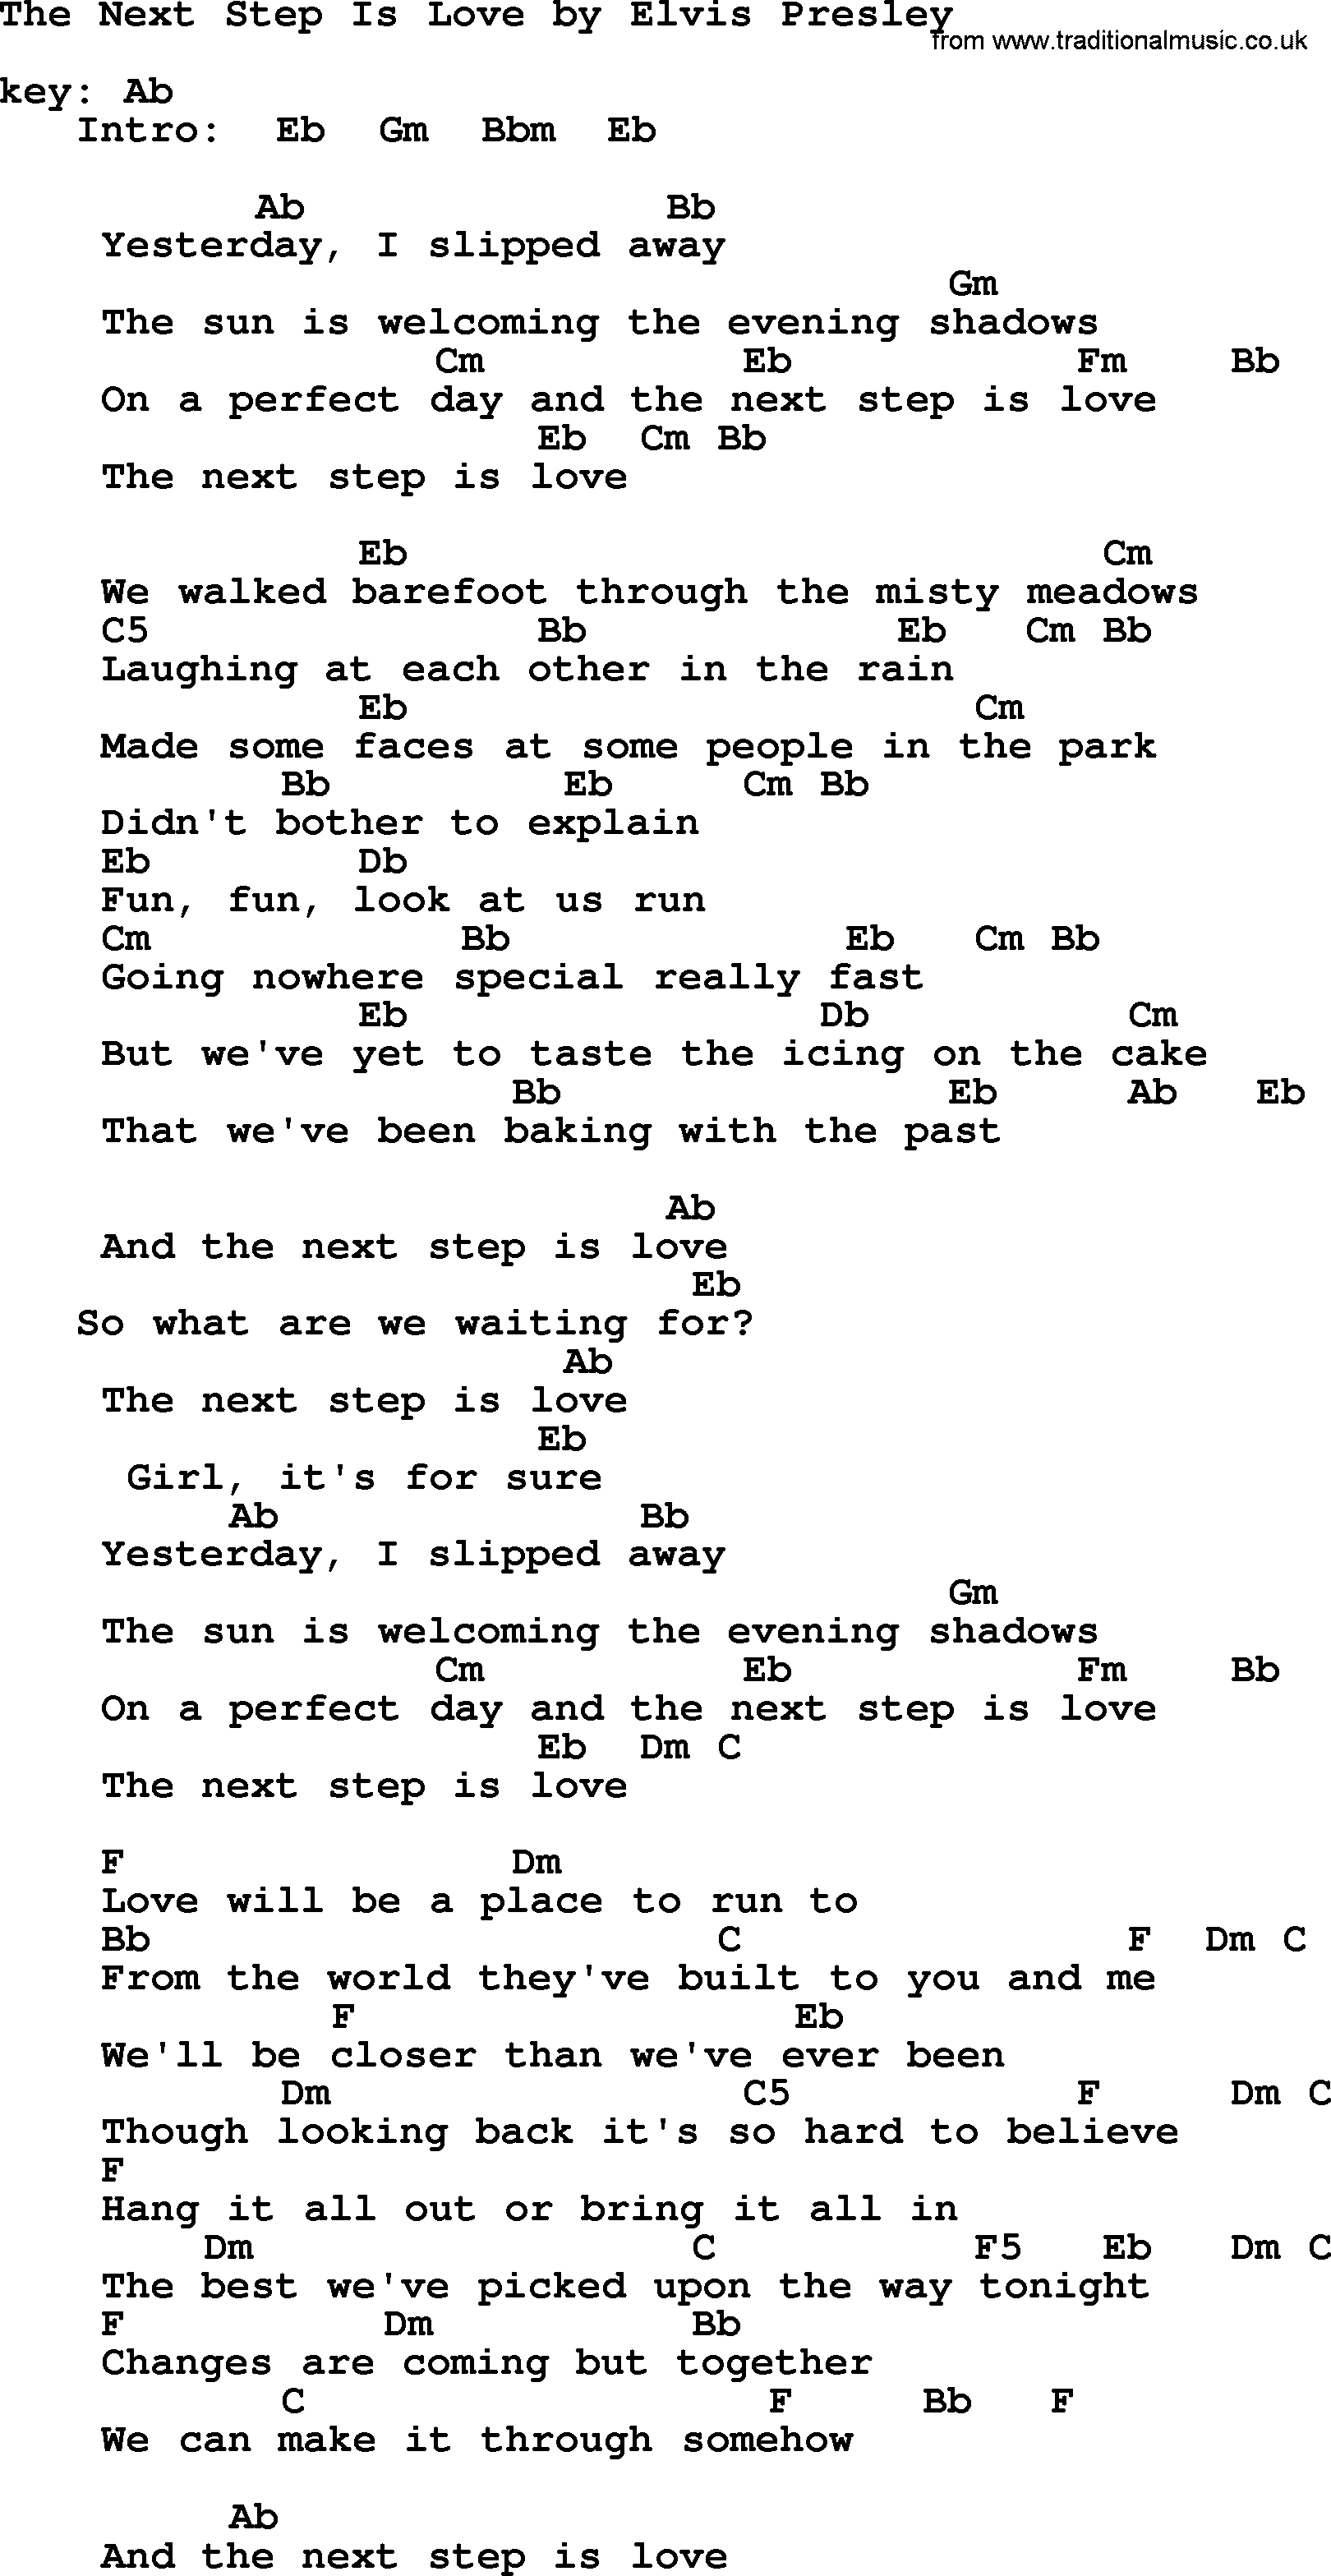 The Next Step Is Love, by Elvis Presley - lyrics and chords